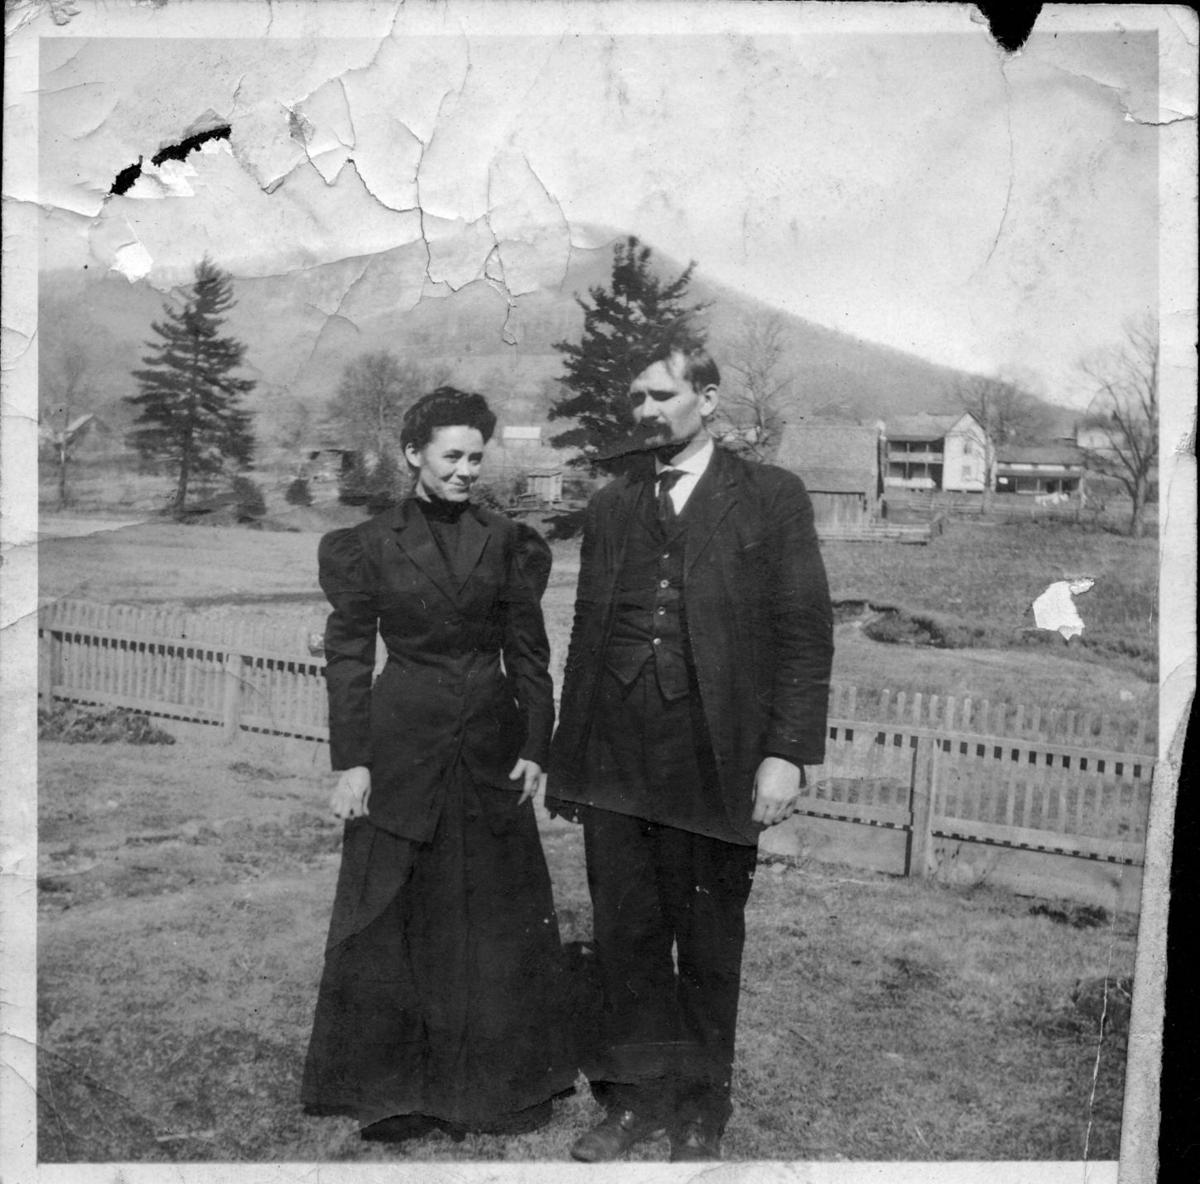 Lillie Shull and D.D. Dougherty